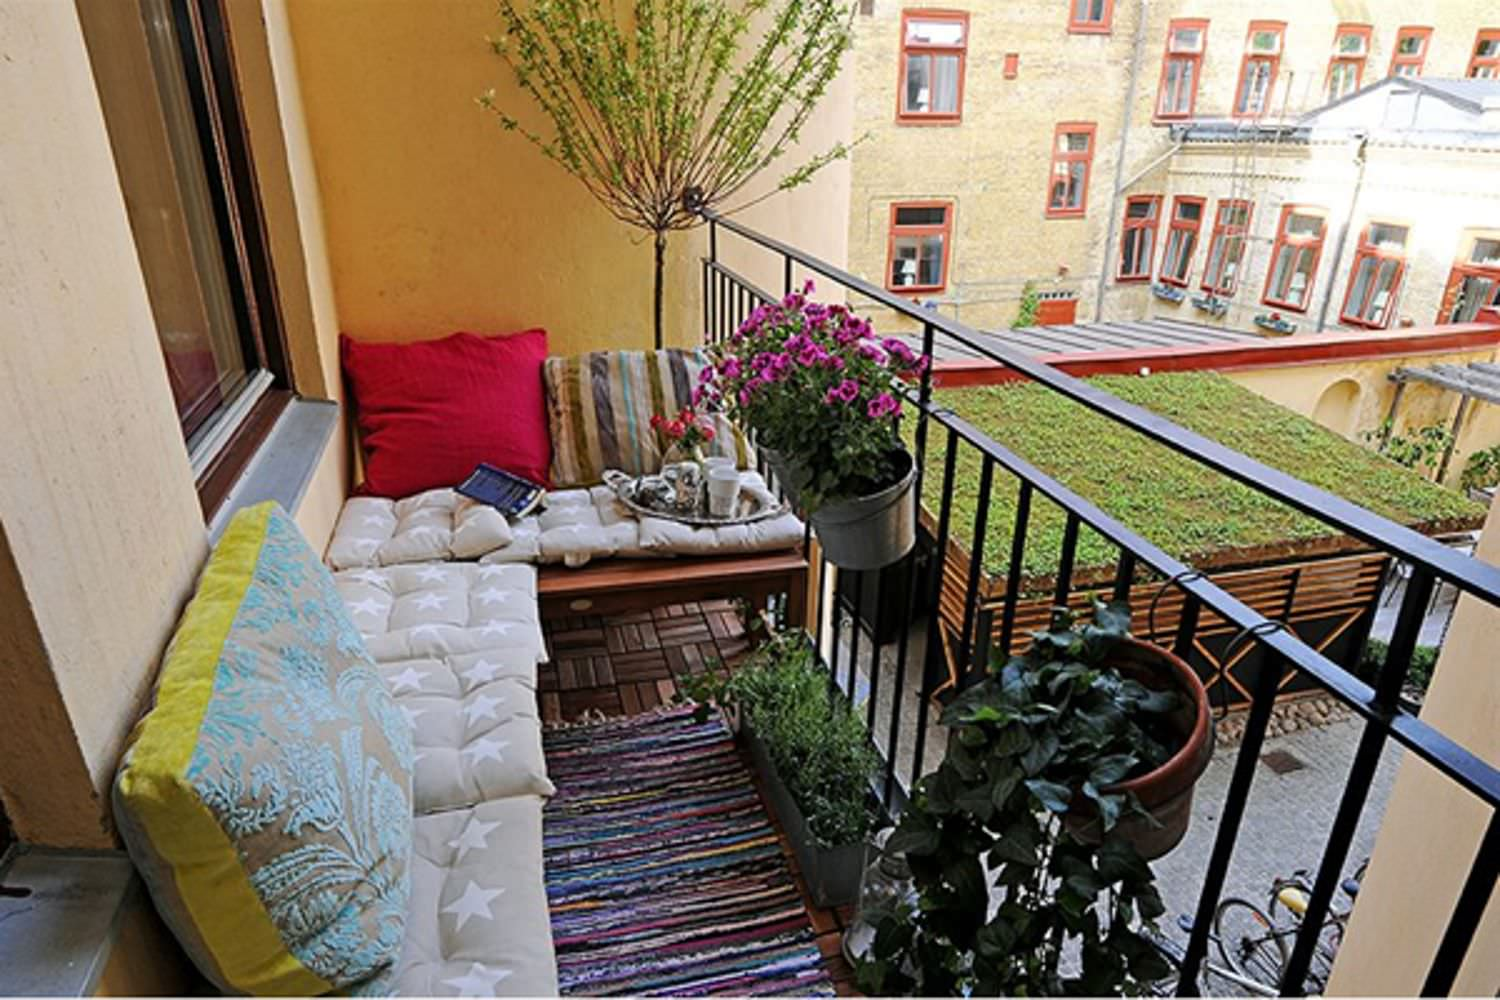 Decks and patio innovative apartment decorating ideas 1000 a.